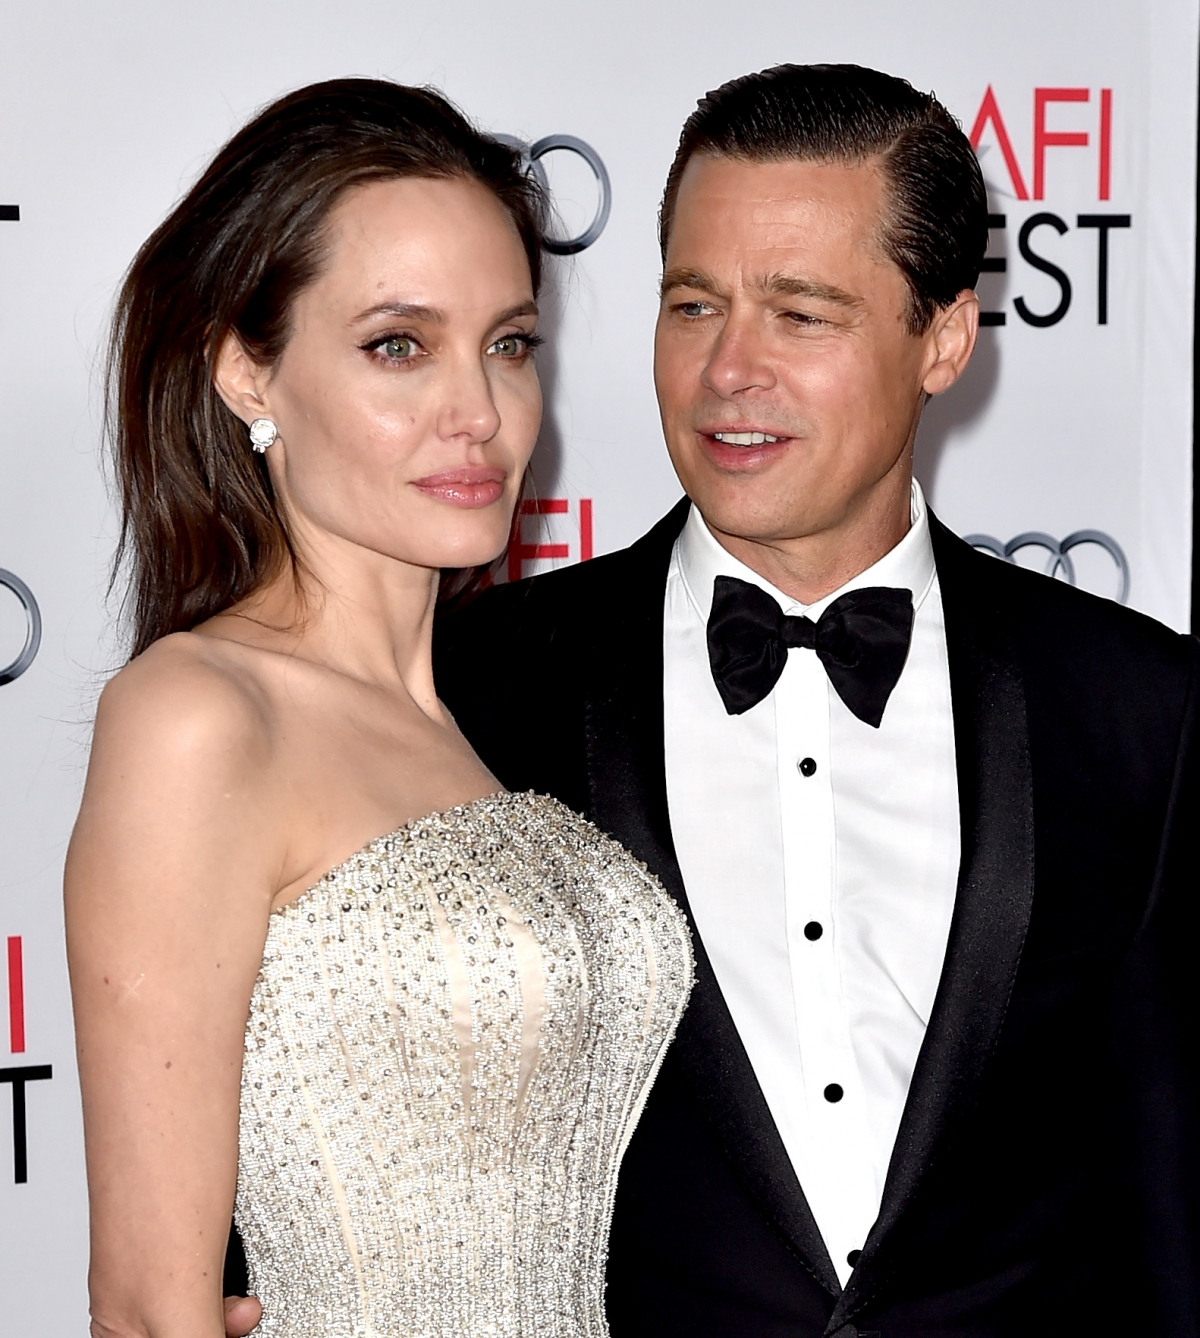 Brad Pitt And Angelina Jolie Wedding Pictures: Angelina Jolie And Brad Pitt Working Together On New Film